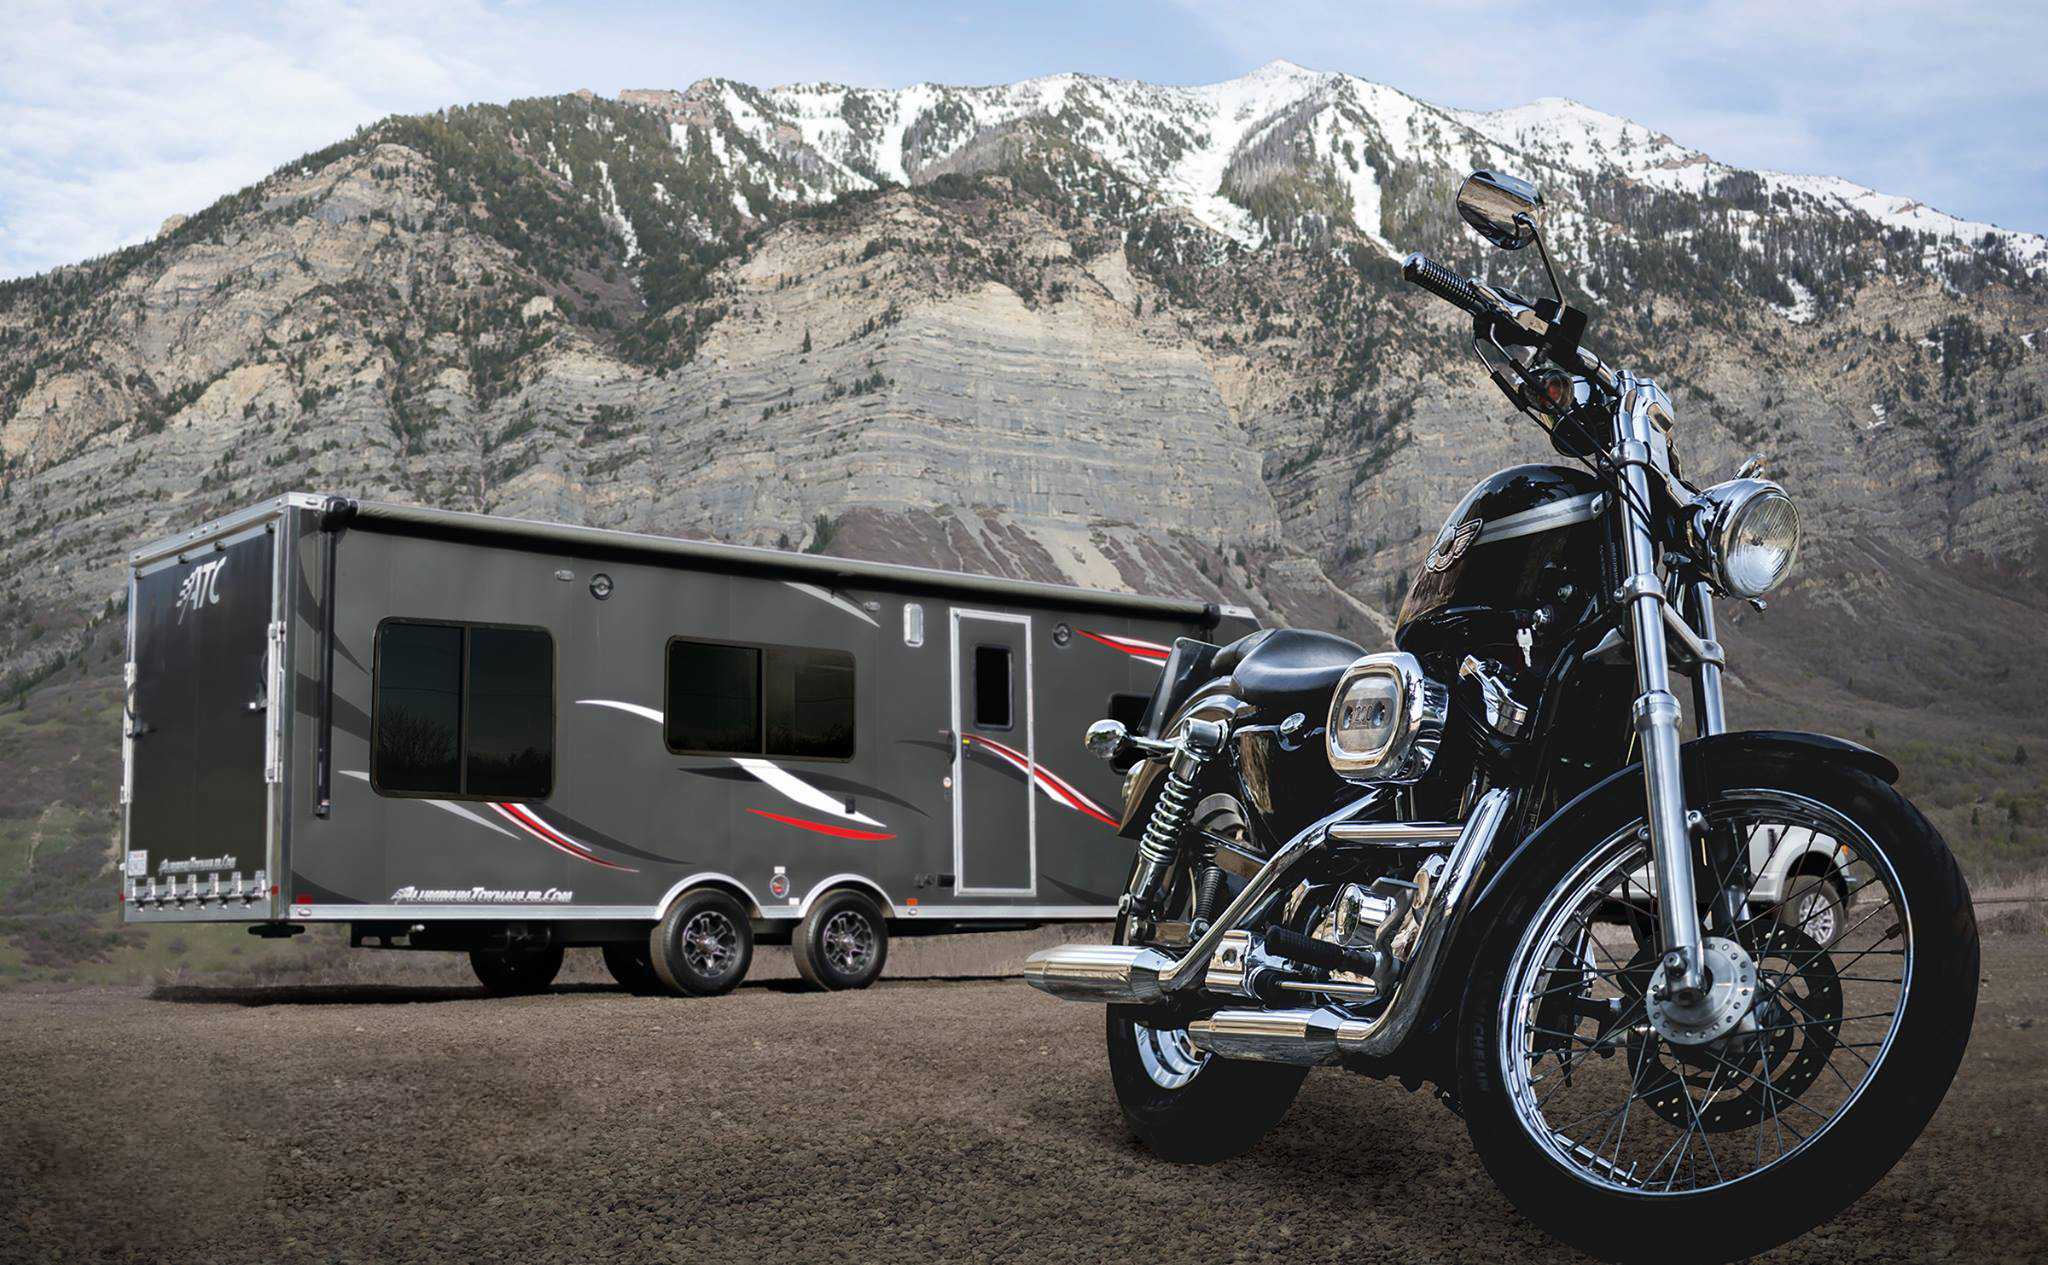 Toppers & Trailers Plus at MSP Motorcycle Show